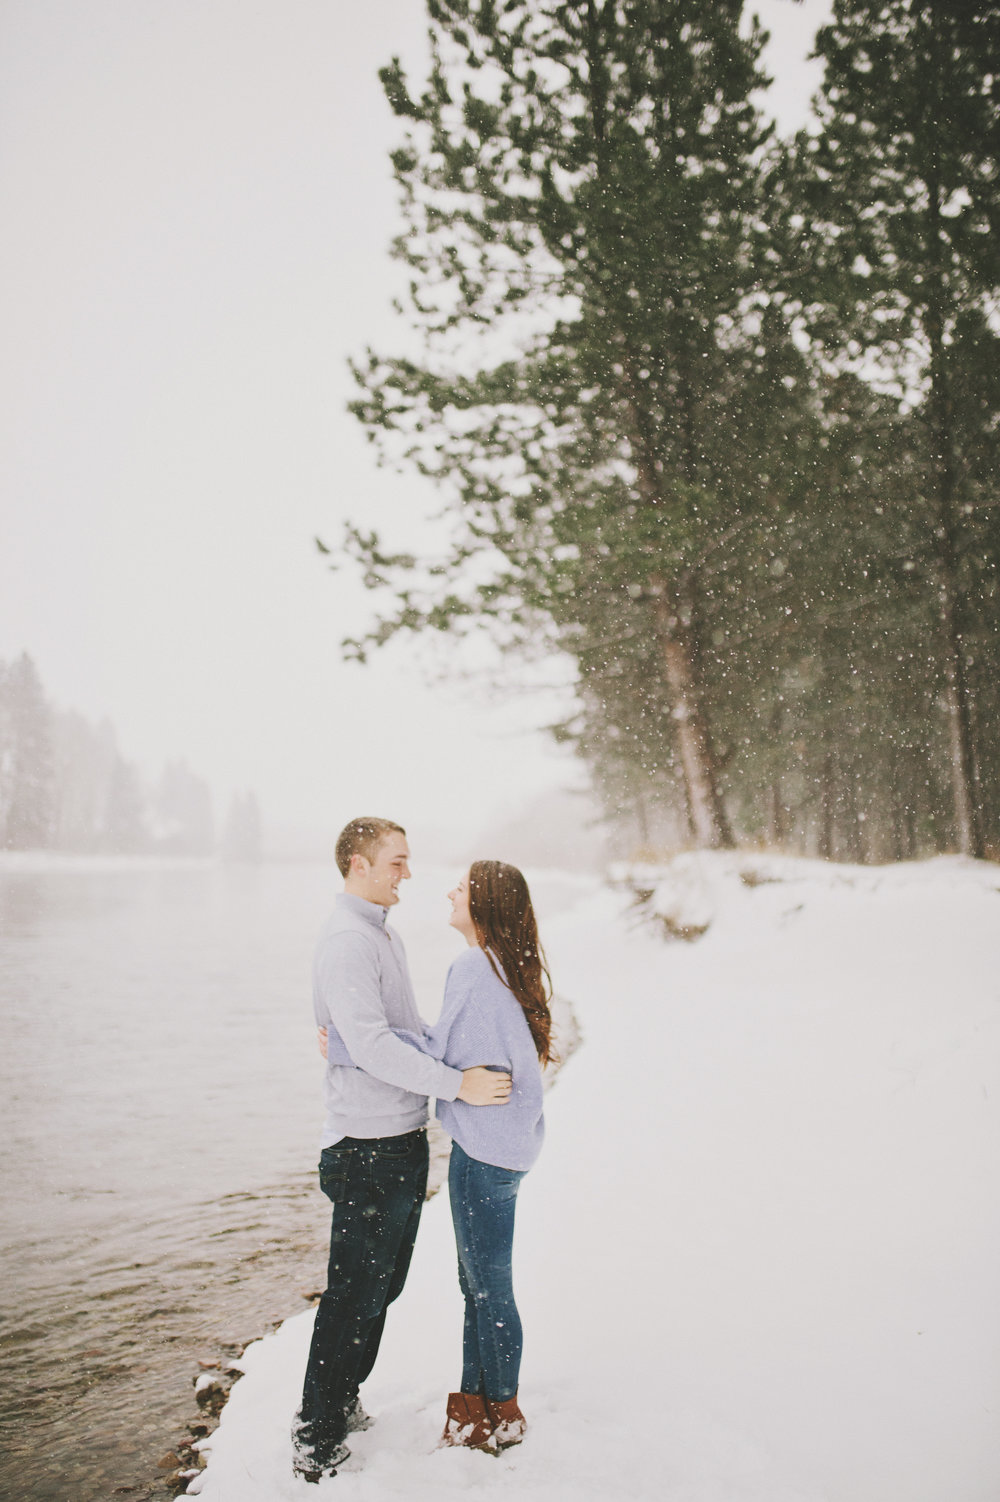 011 Winter Engagement Session_Missoula Engagement Session_Fun Engagement_Blue and Grey Engagement_Kelsey Lane Photography_Tifani + Ryan-2505 copy.jpg